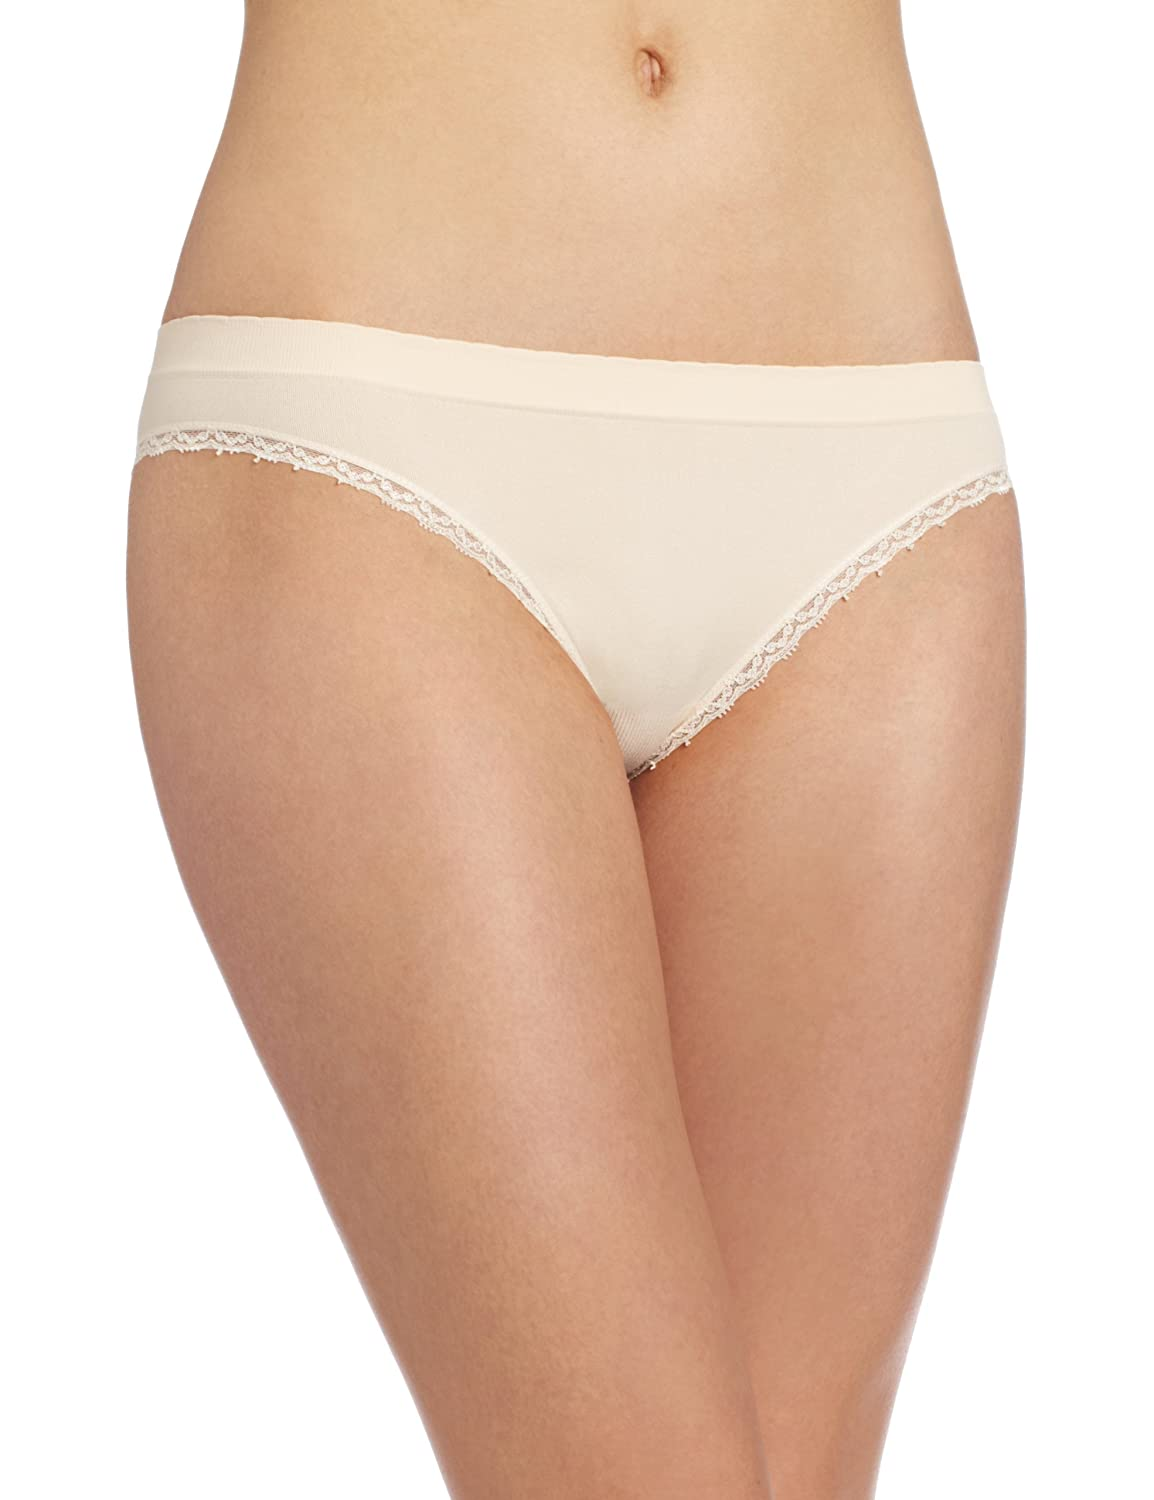 eb0f4662fd76 Barely There Women's Custom Flex Fit Cheeky Panty at Amazon Women's  Clothing store: Barely There Underwear